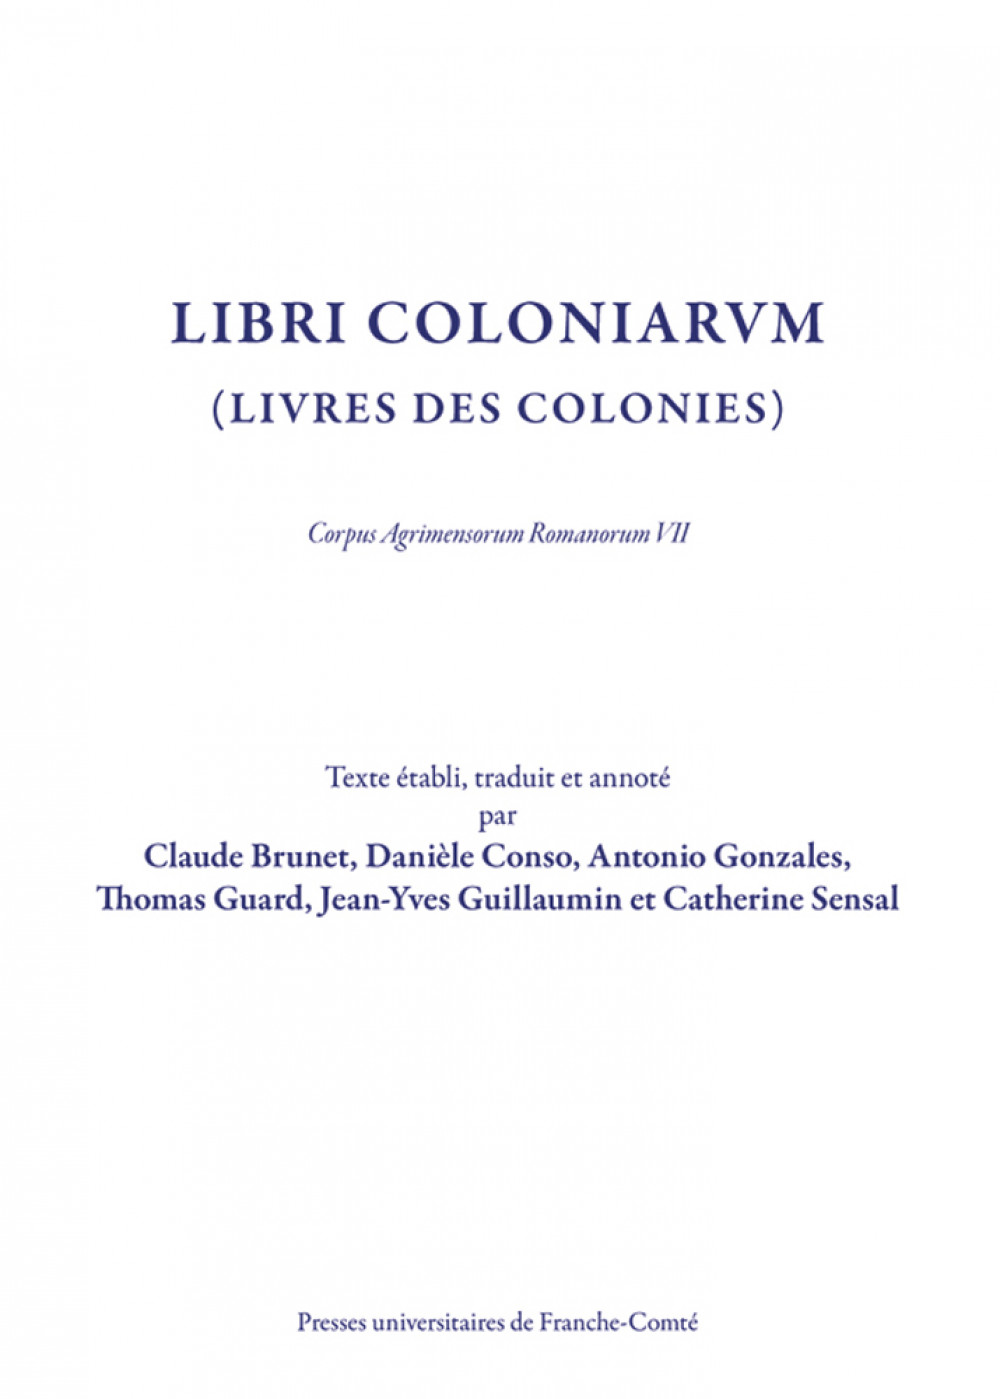 Libri Coloniarum